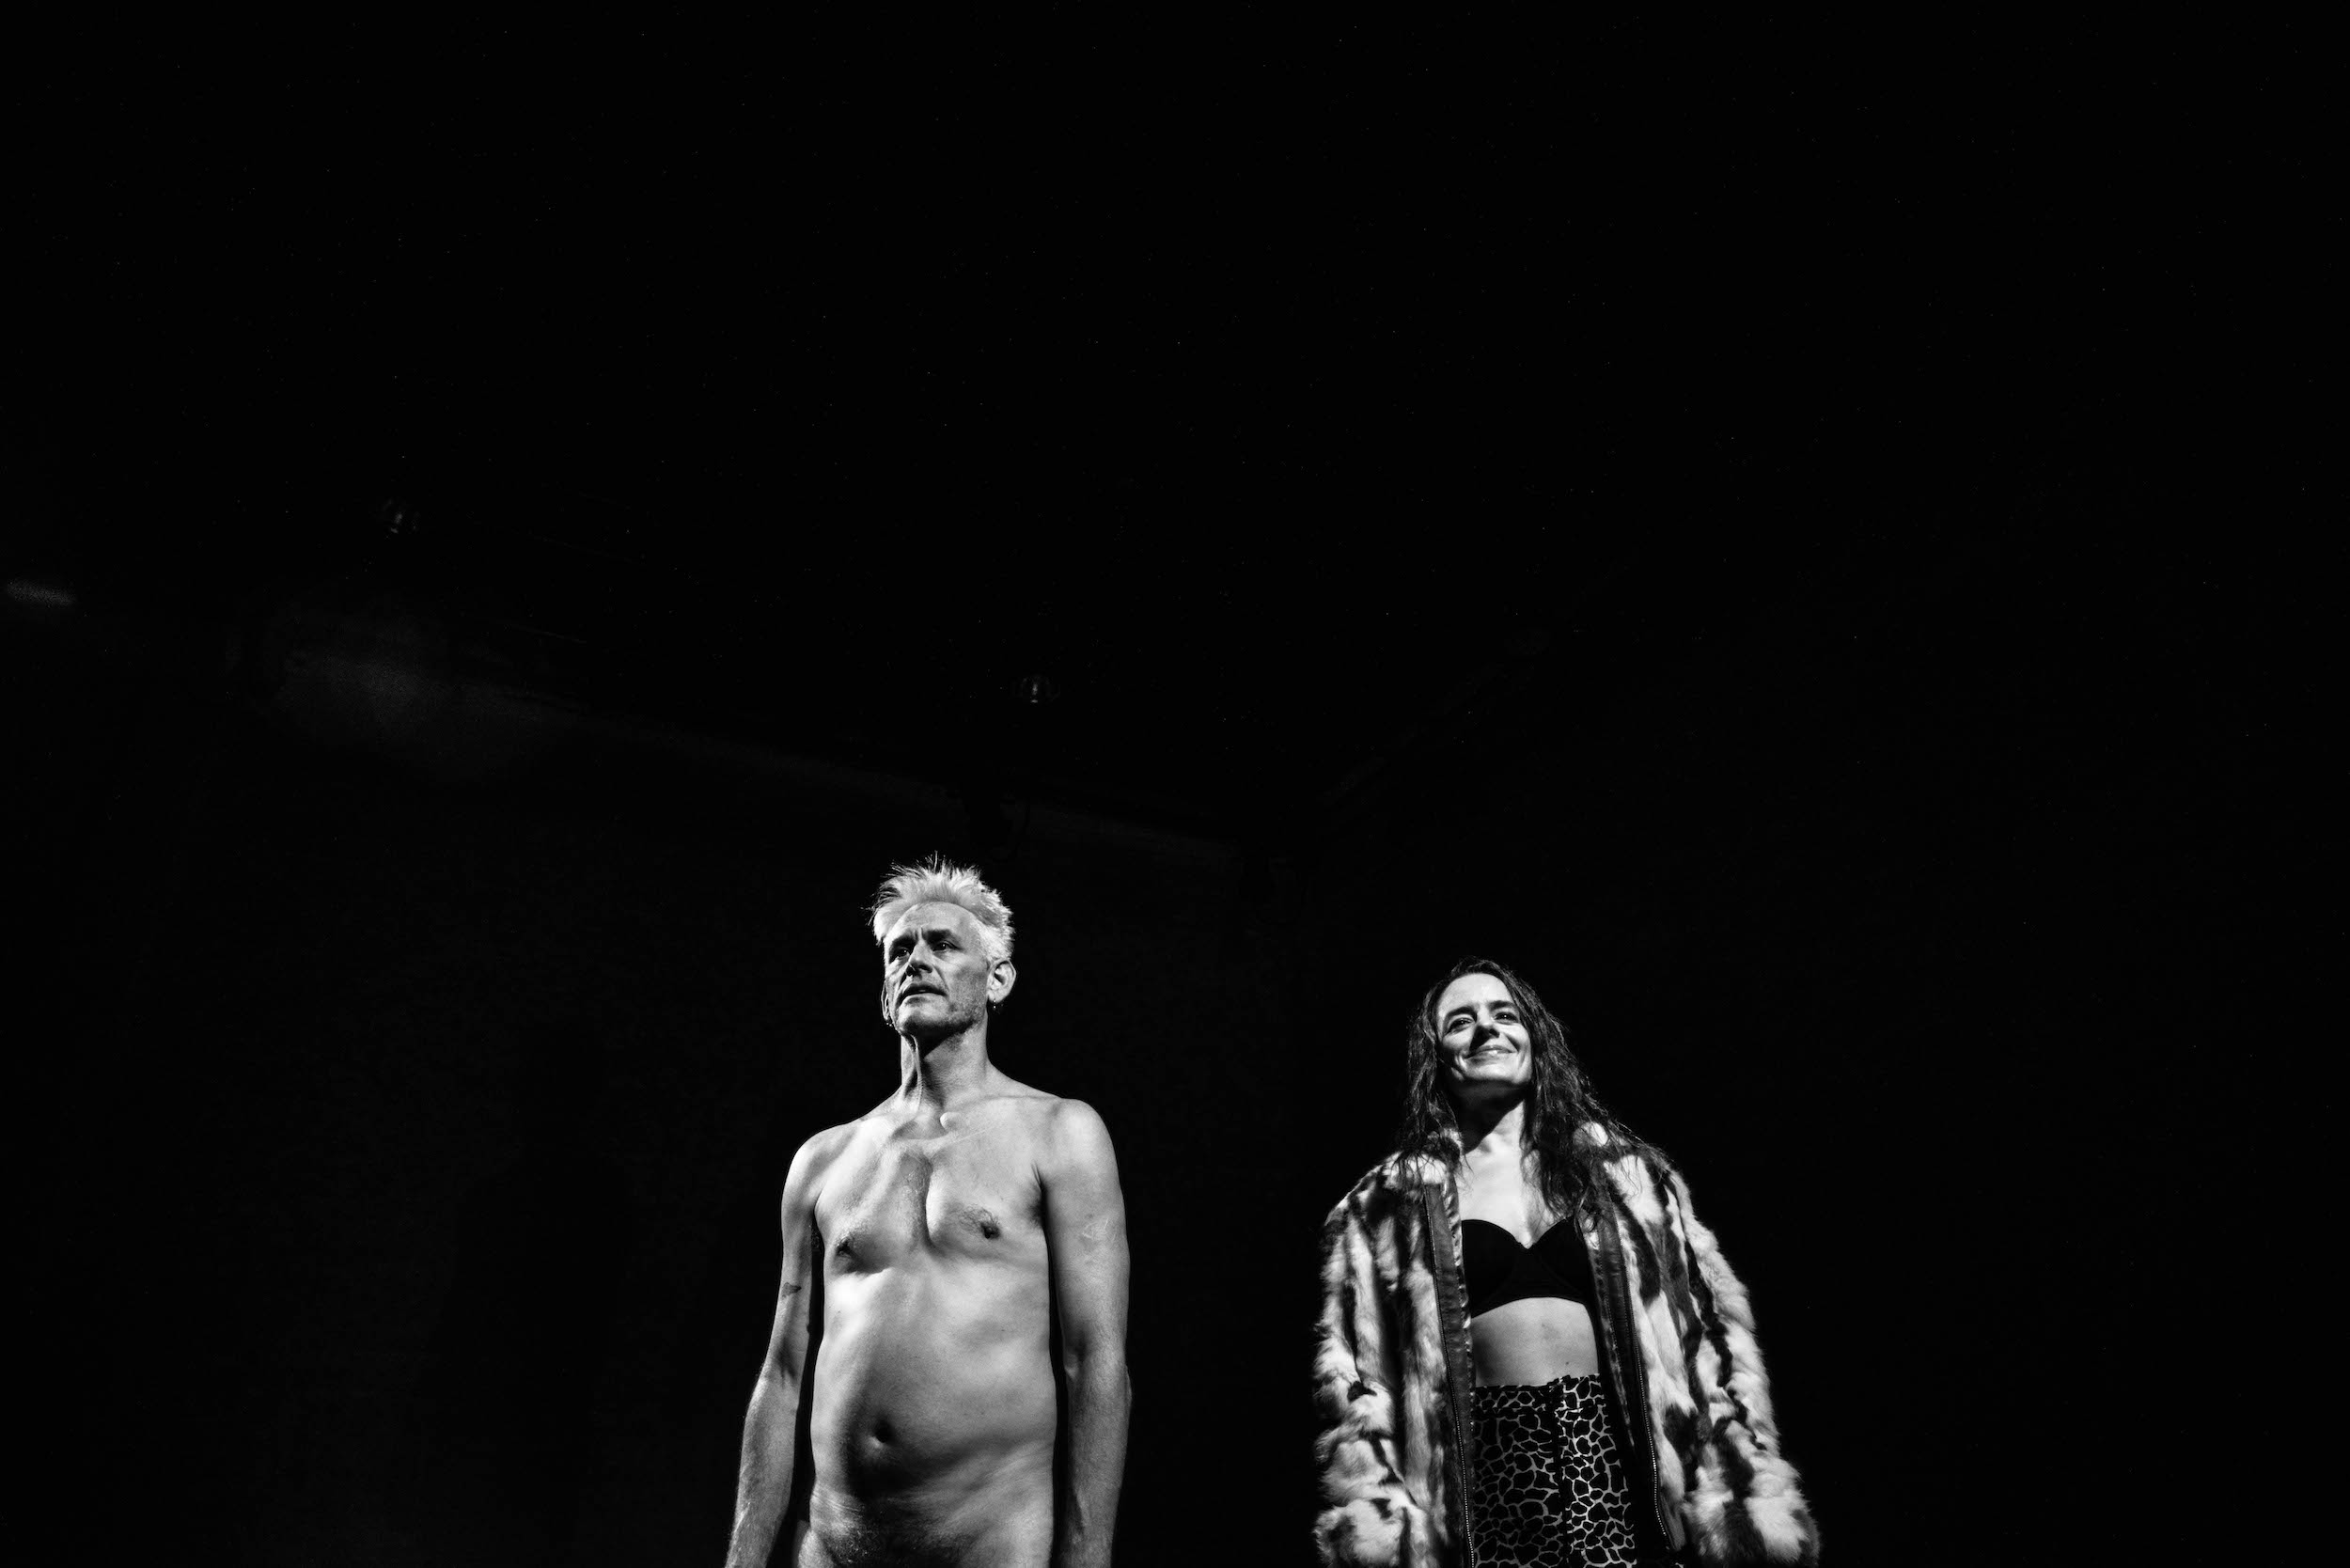 Black-white image of Curtis (nude) and Dichter (in black bra and fur coat) against black background, image cropped at the hip. (photo: Robbie Sweeny)